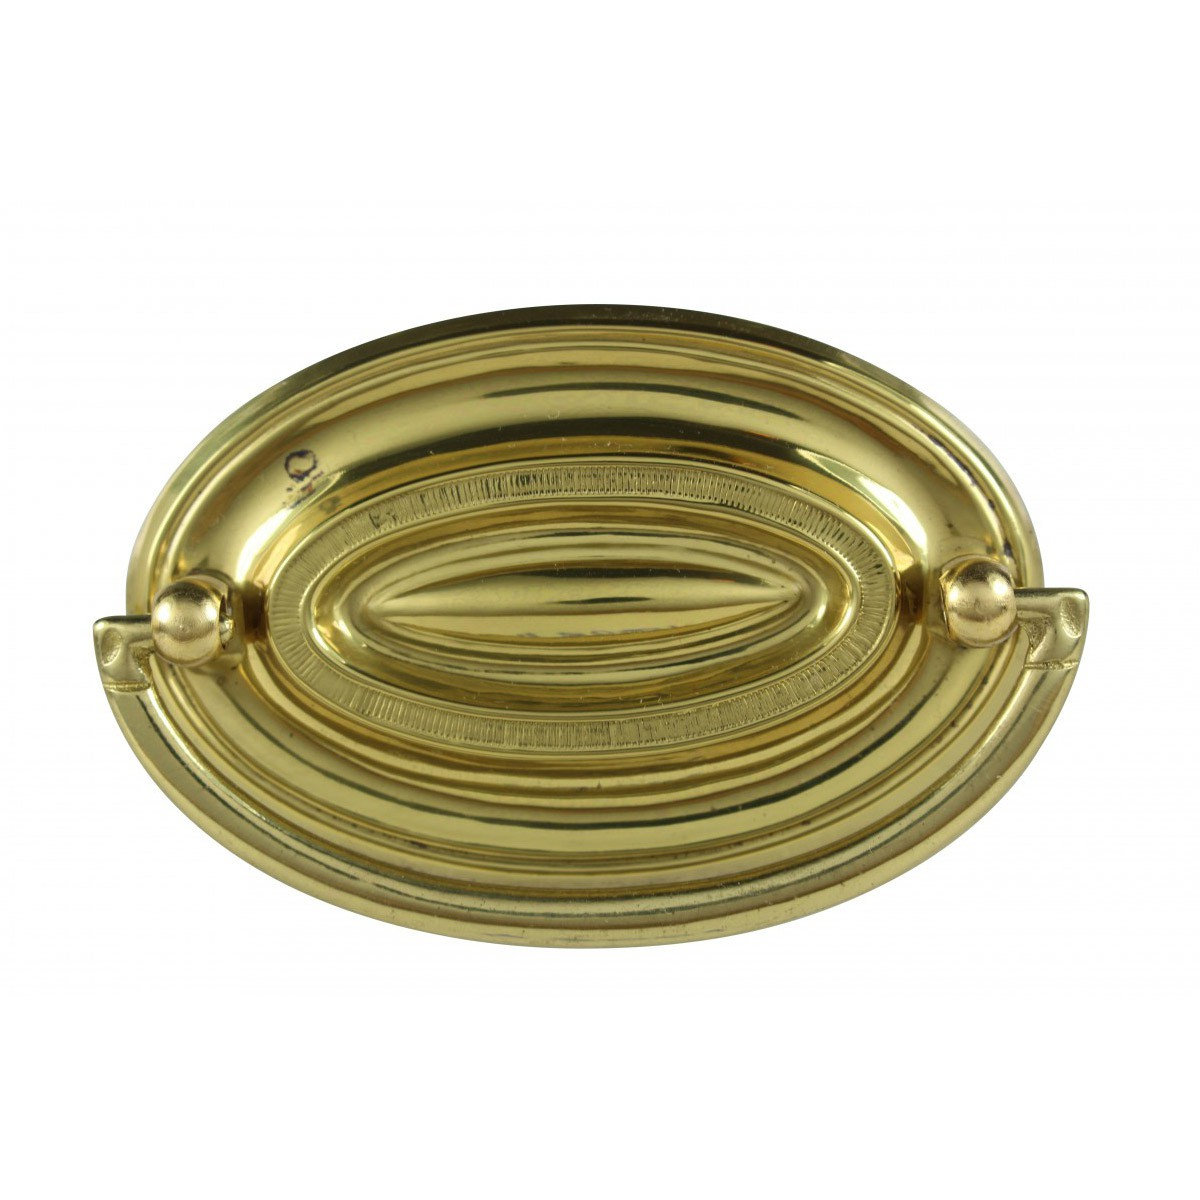 Hepplewhite Drawer Pull Polished Solid Brass 3 1 2 W